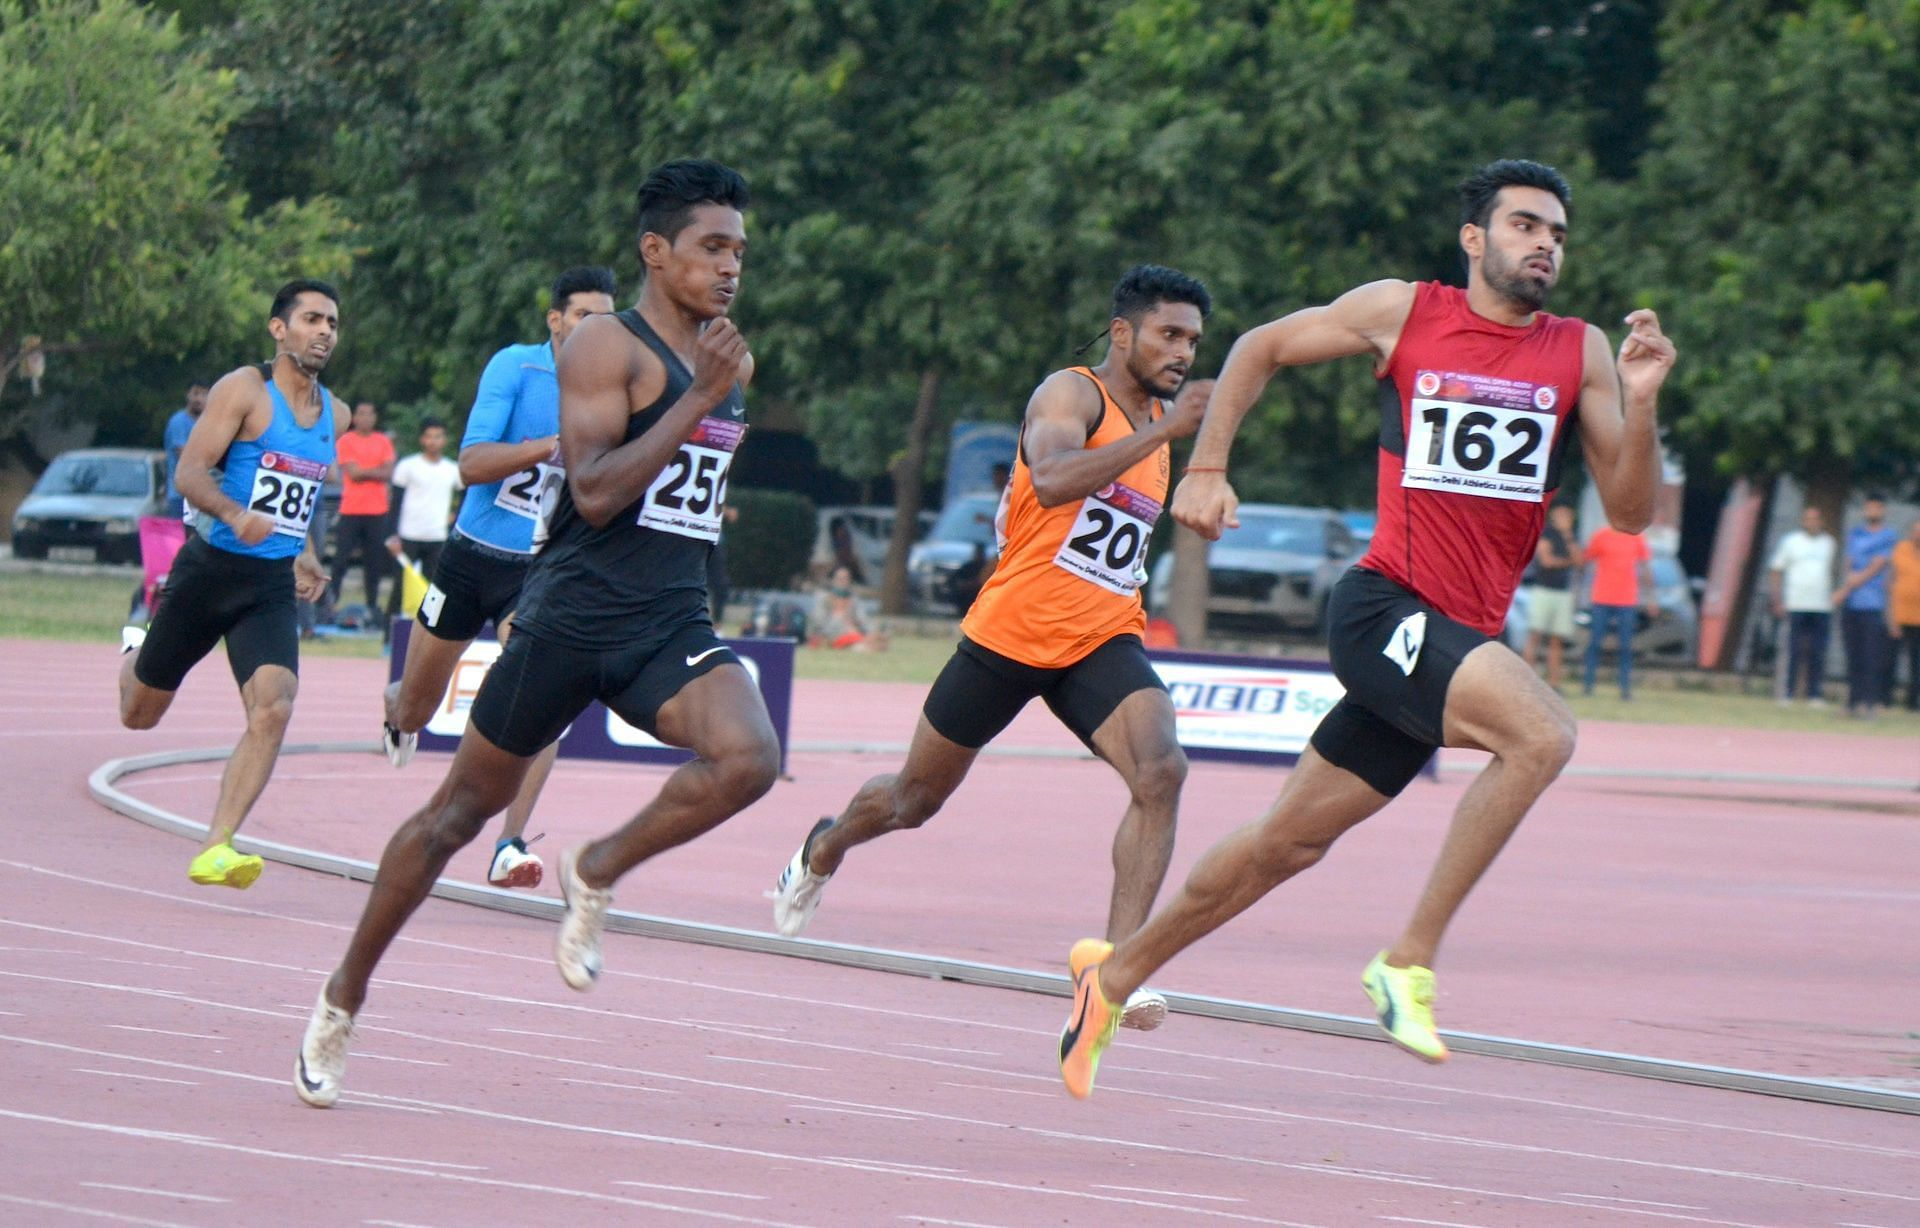 National Open 400m Championship 2021: Day 2 (source: Athletics Federation of India)